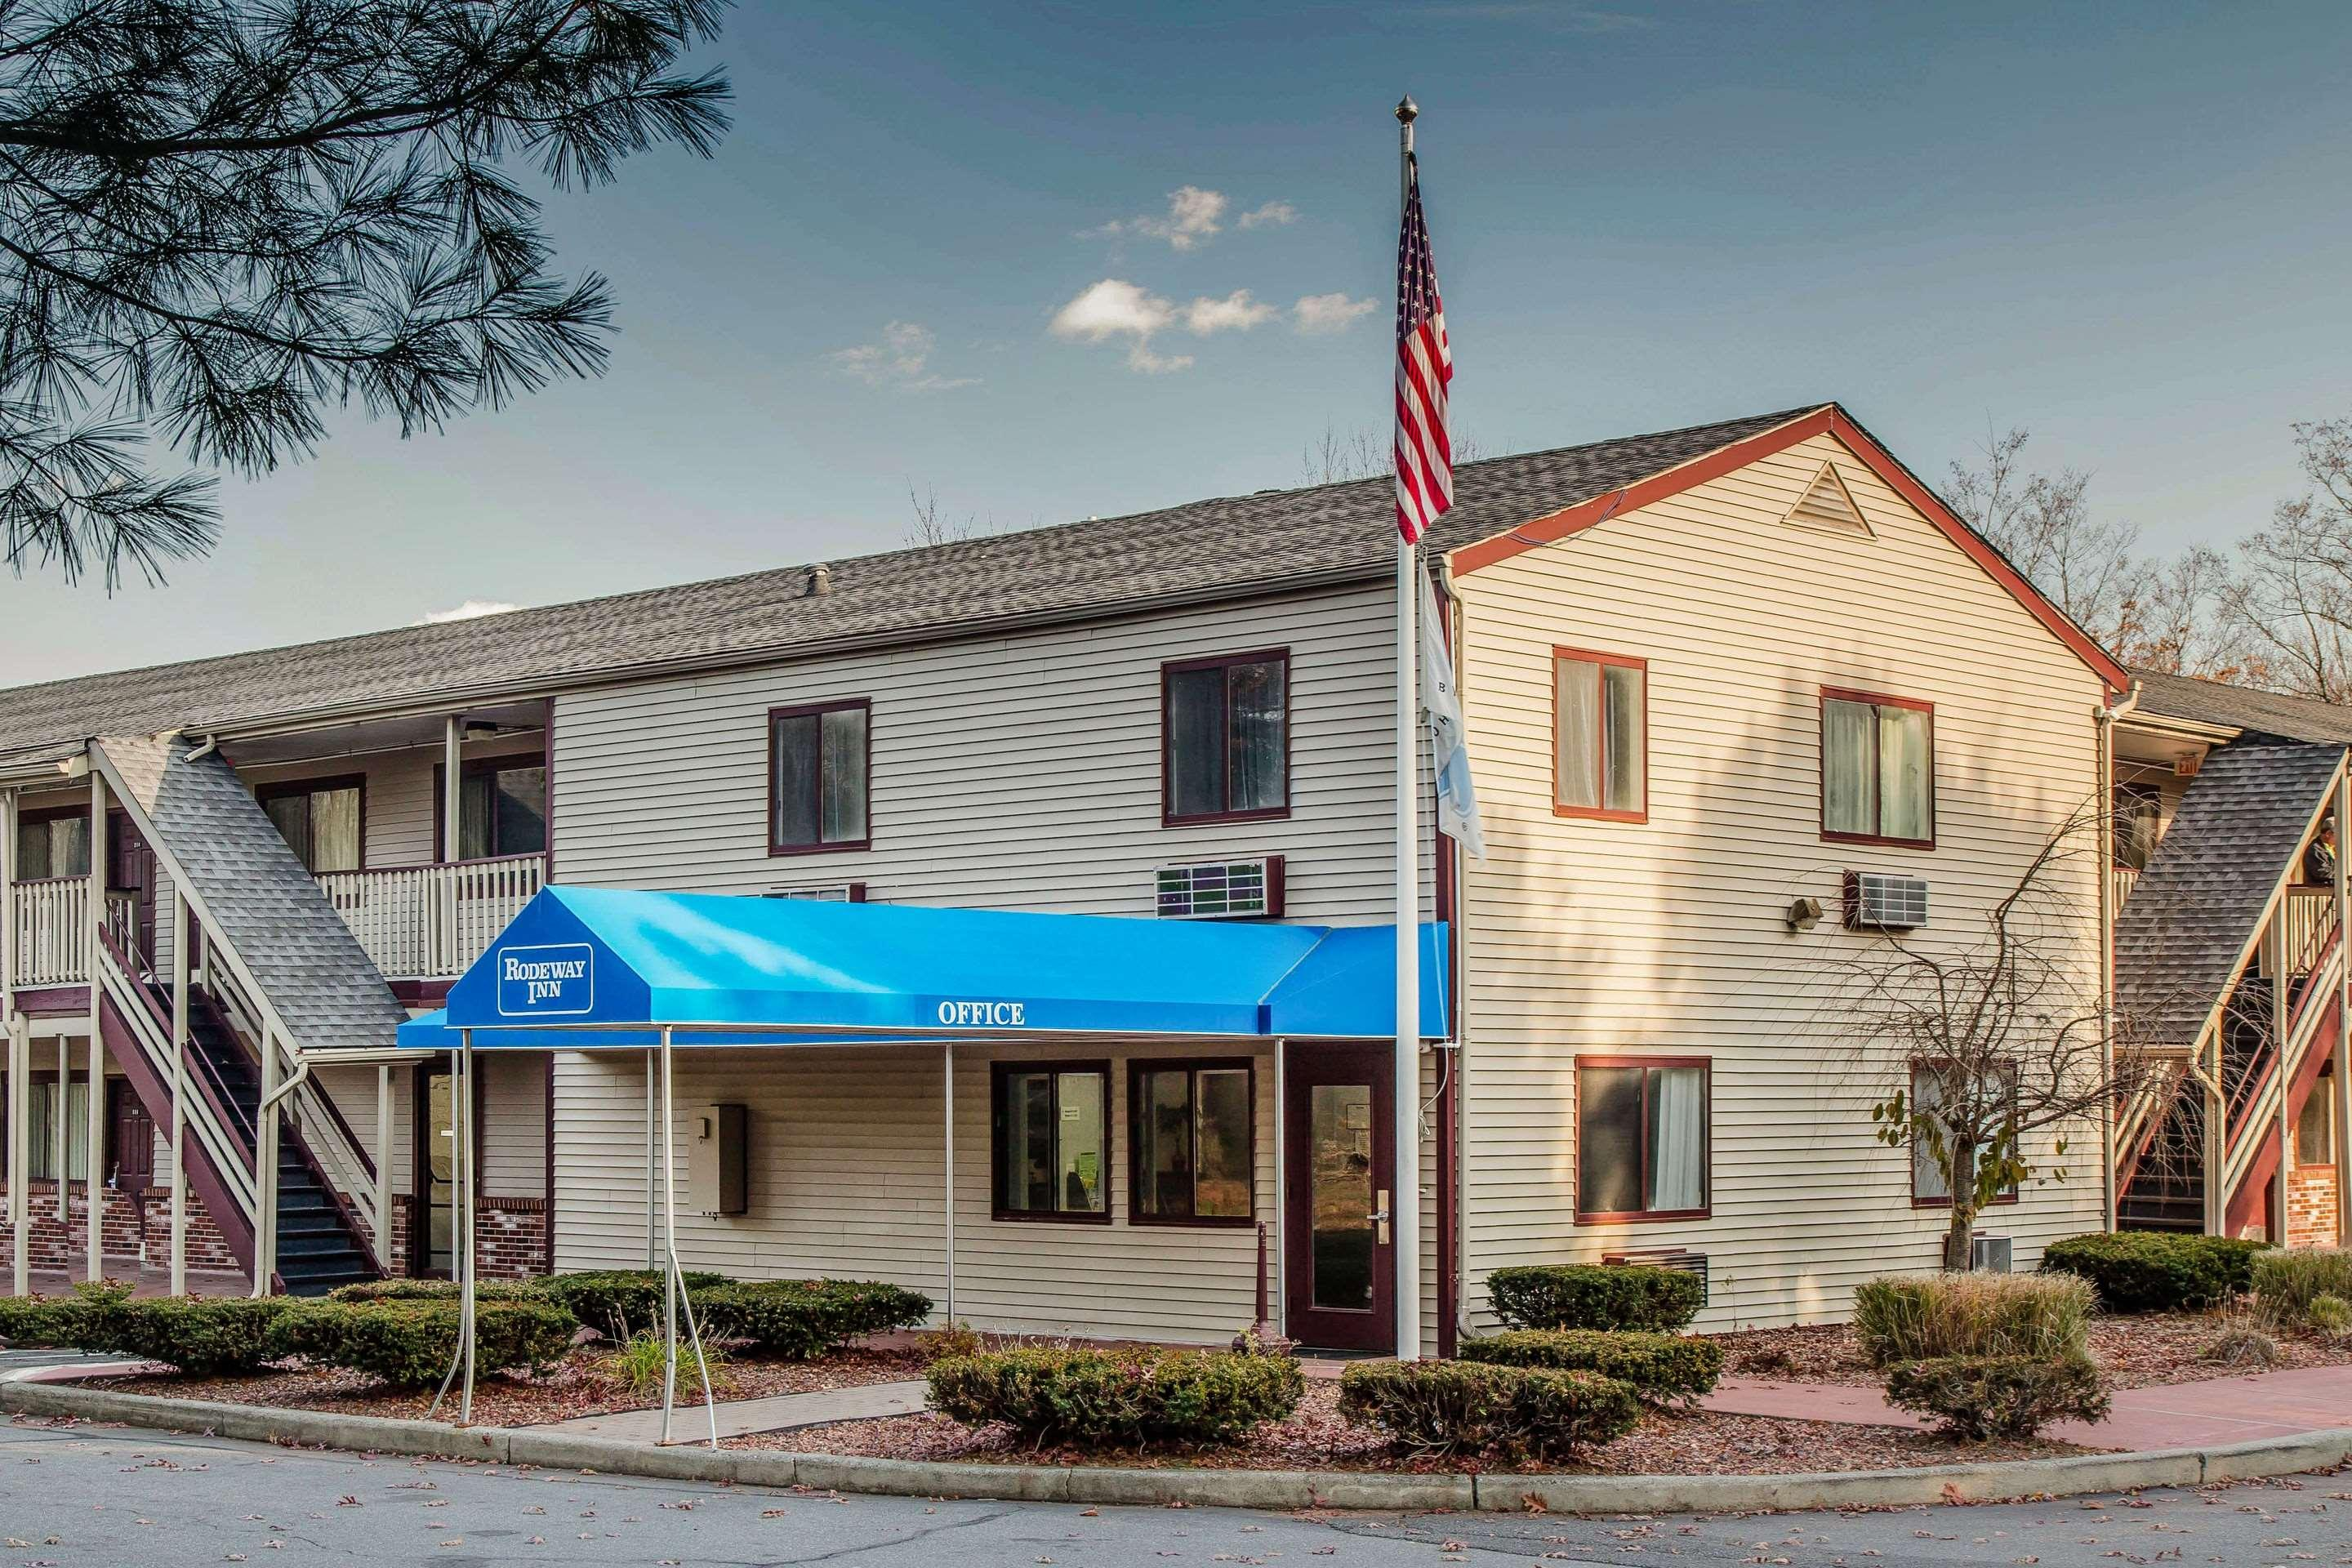 Rodeway Inn R550 R 8 1 6 Groton Hotel Deals Reviews